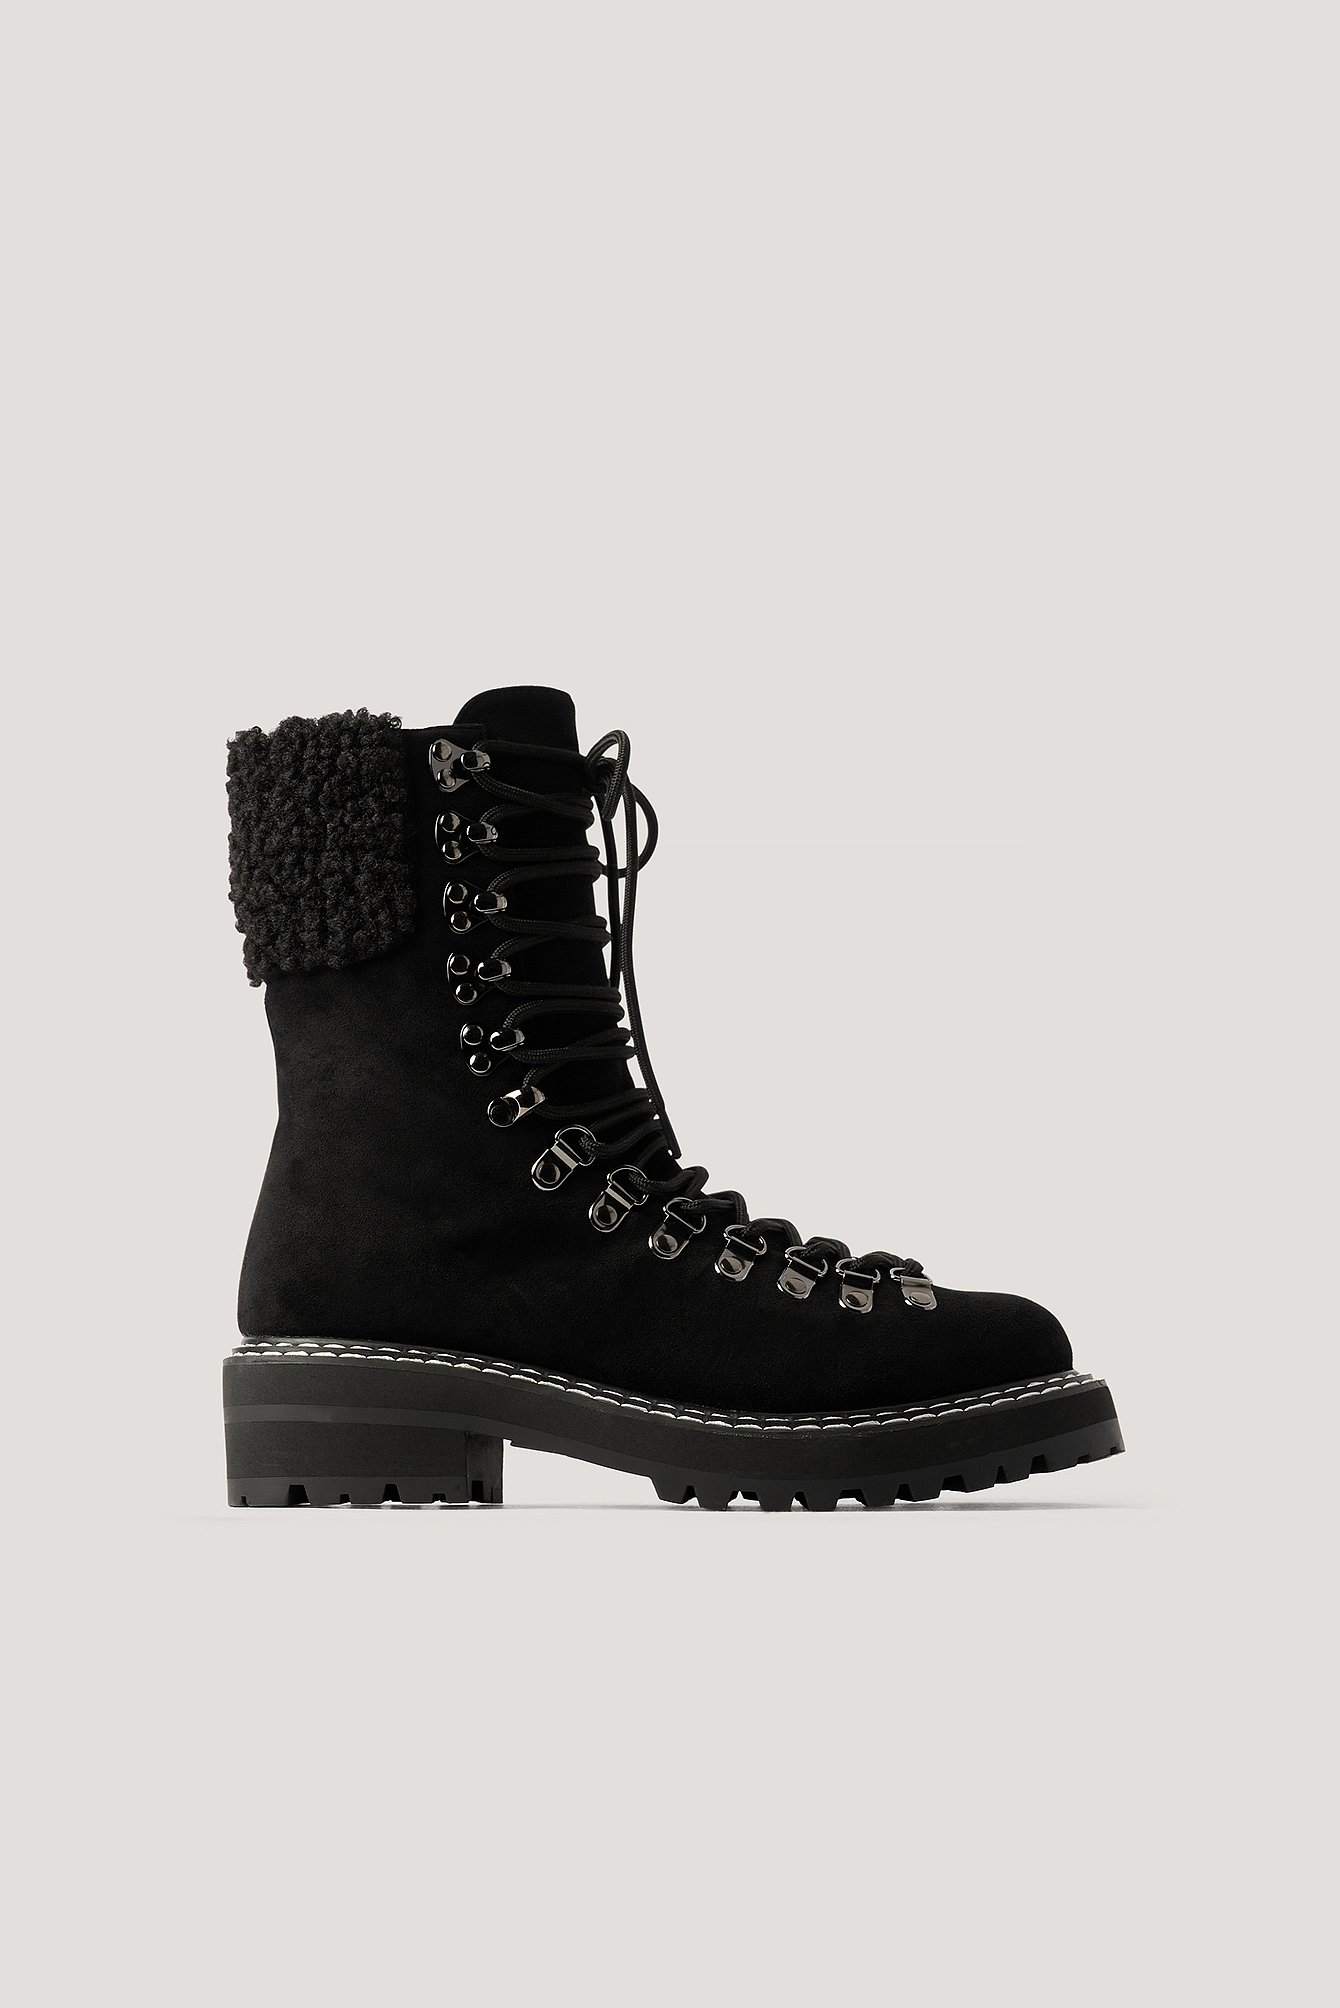 Na-Kd Shoes Teddy Detailed Trekking Boots - Black